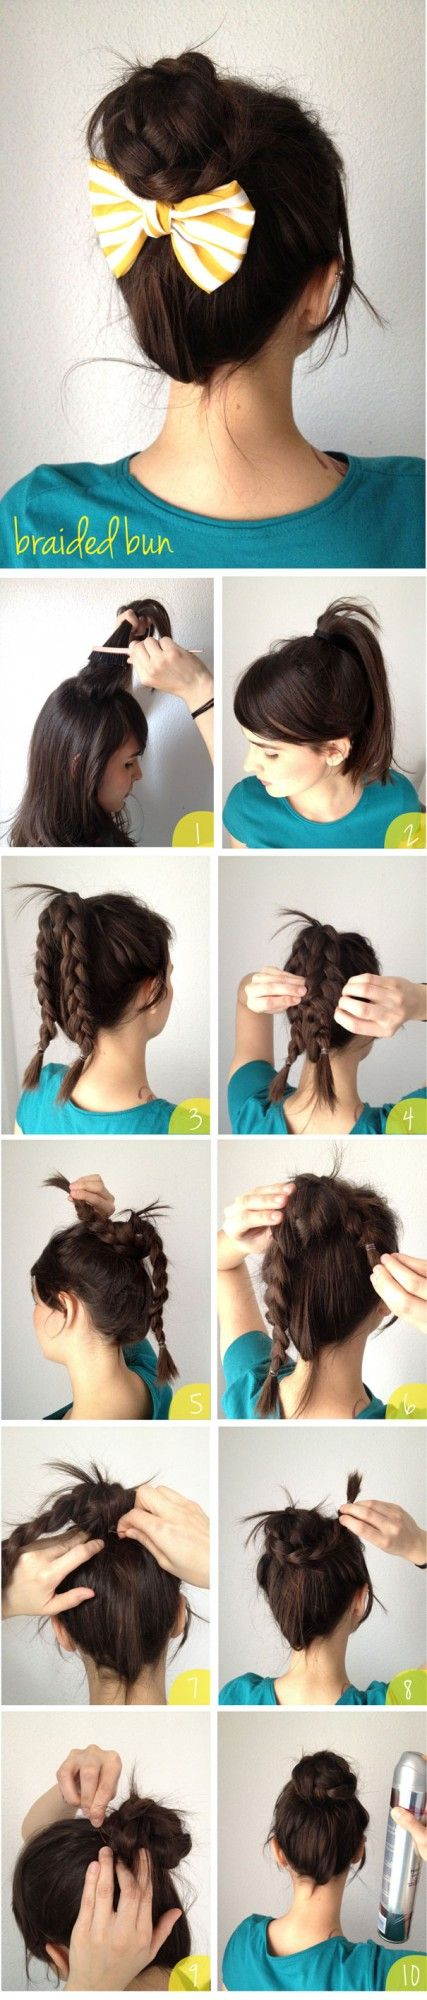 18 Cute Hairstyles that Can Be Done in a Few Minutes – Pretty Designs